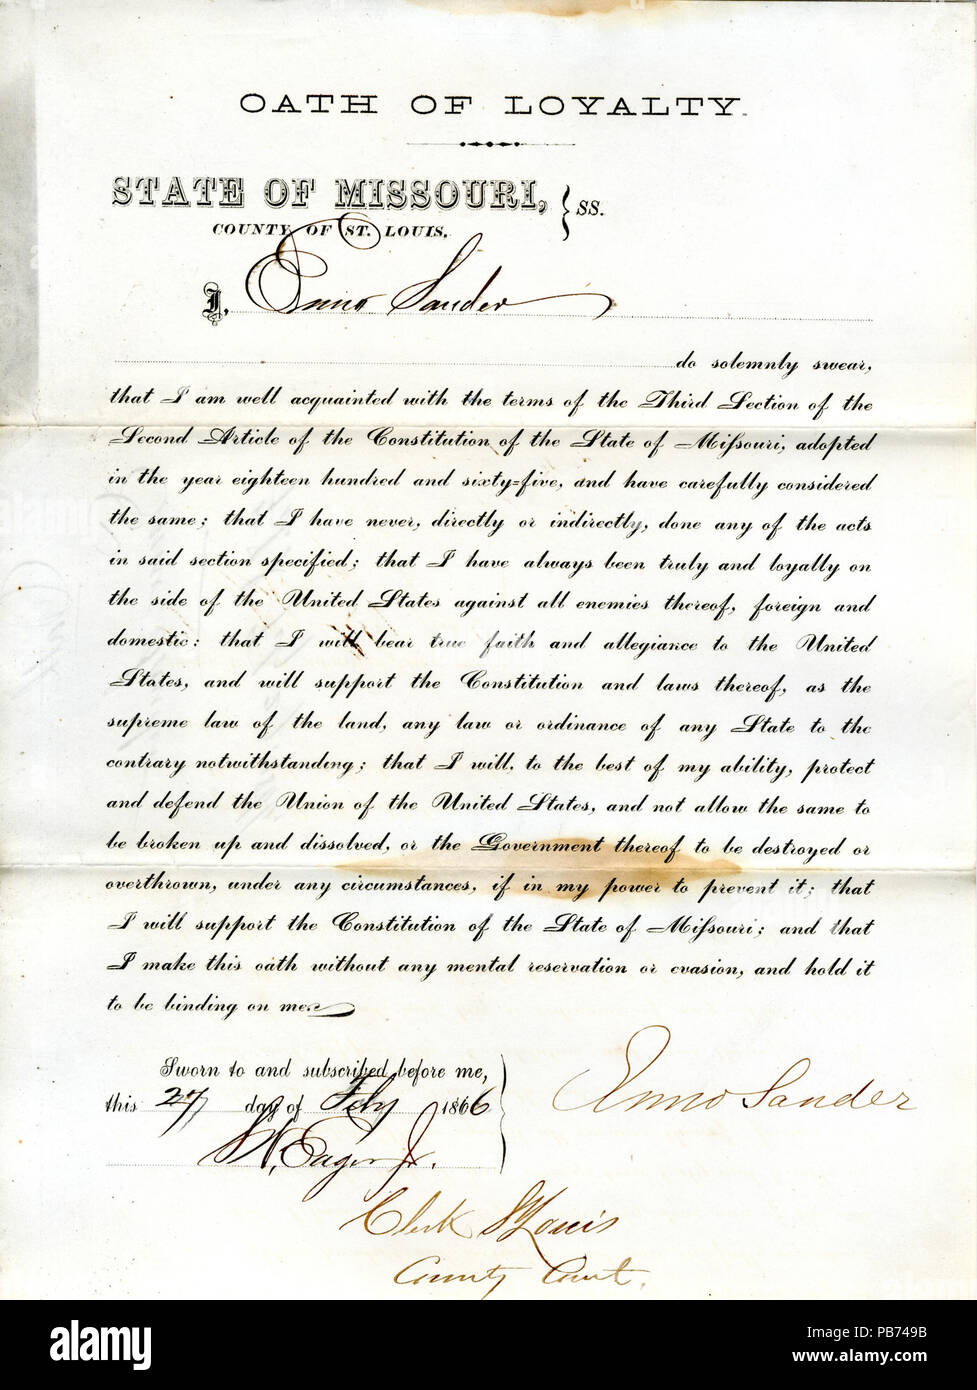 946 Loyalty oath of Enno Sander of Missouri, County of St. Louis - Stock Image